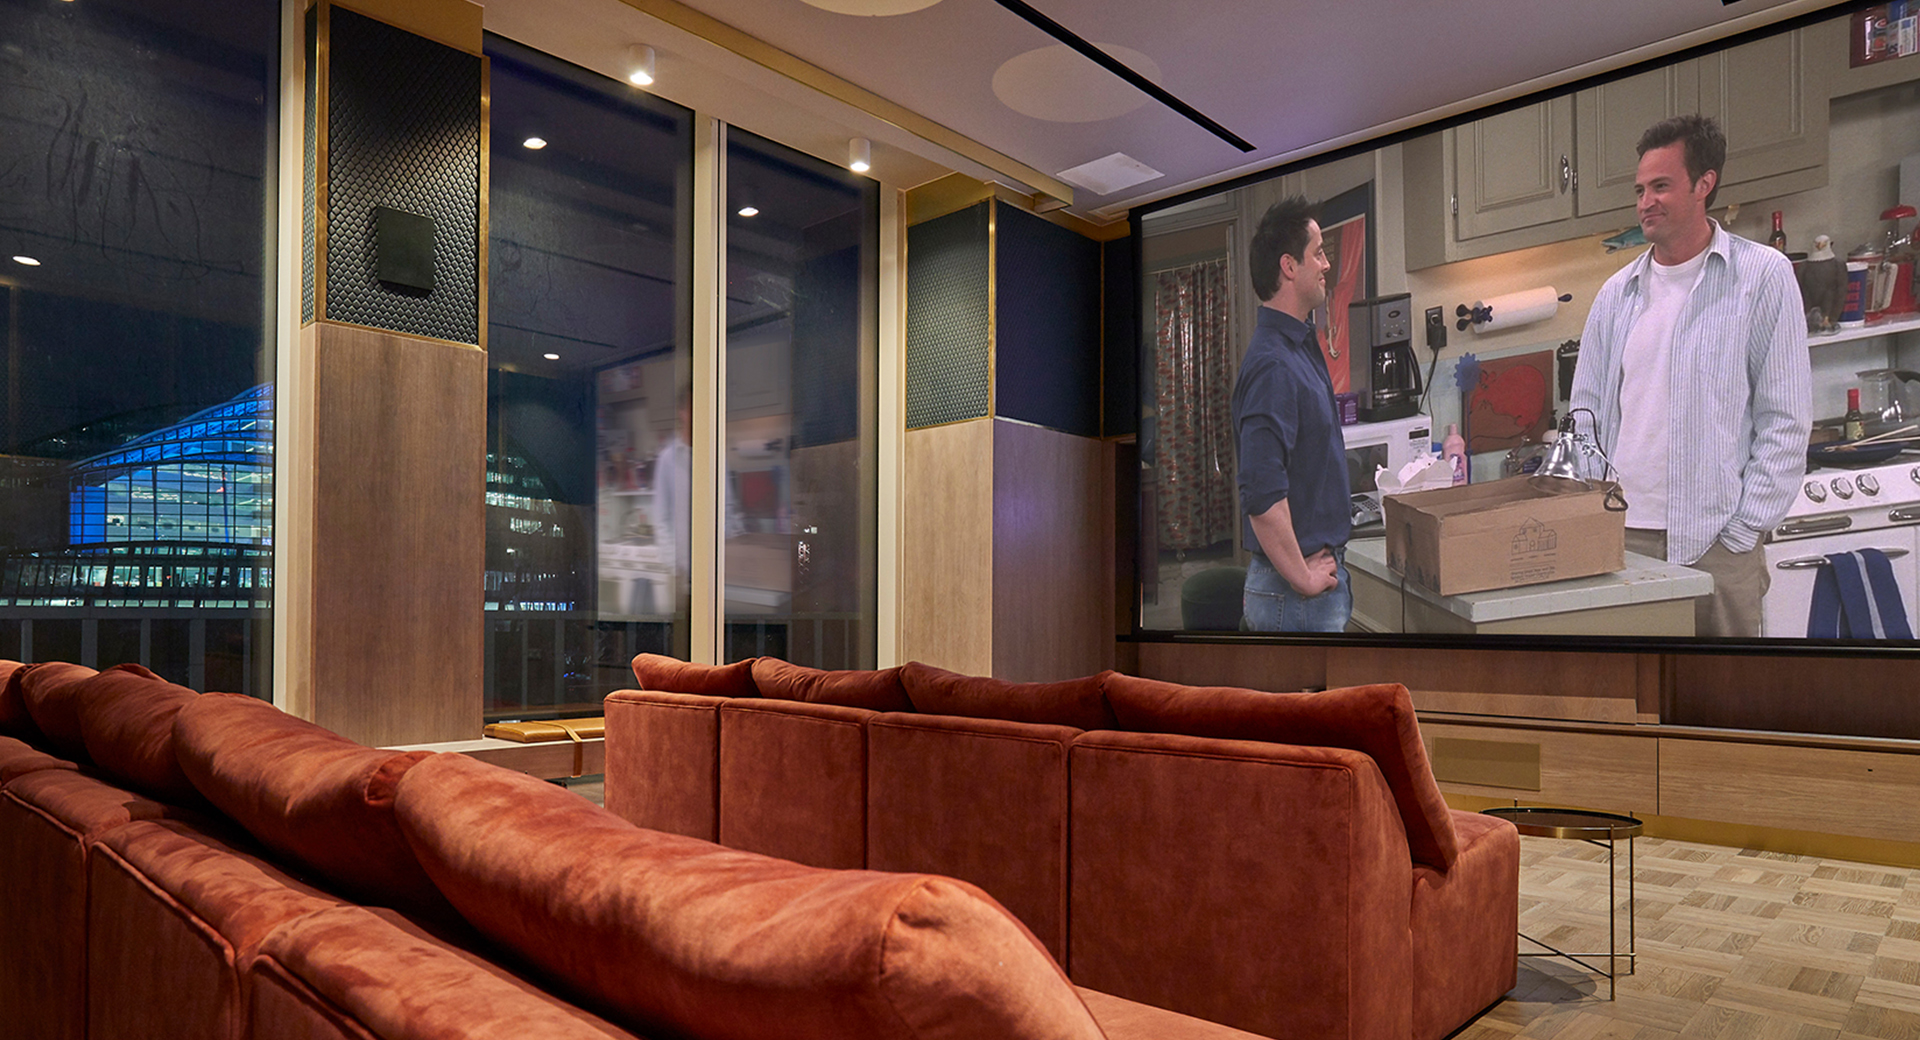 image of sofas and projector screen in media room